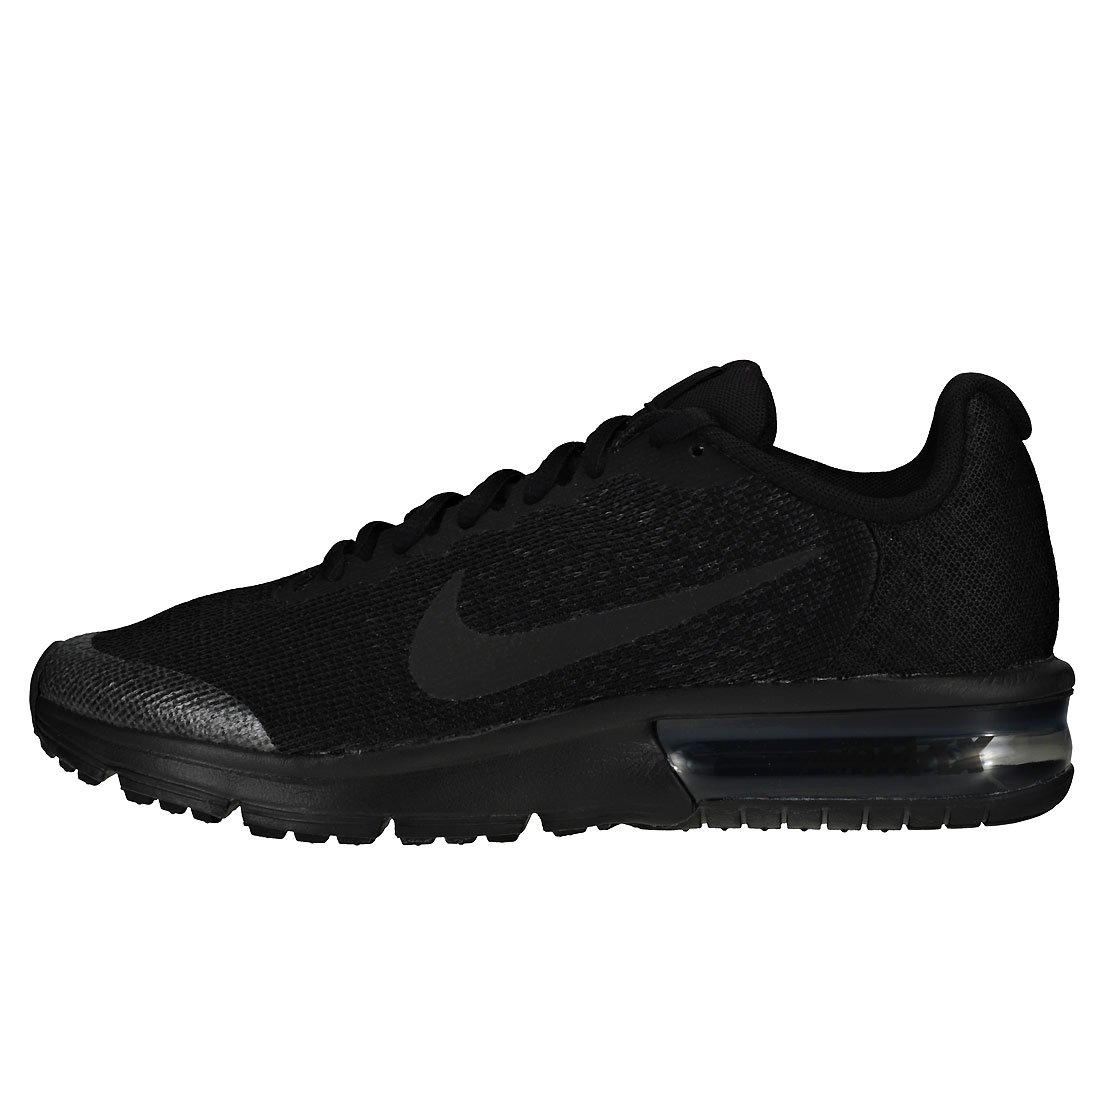 best service 3f3be 85259 Nike Girls Air Max Sequent 2 (Gs) Gymnastics Shoes  Amazon.co.uk  Shoes    Bags